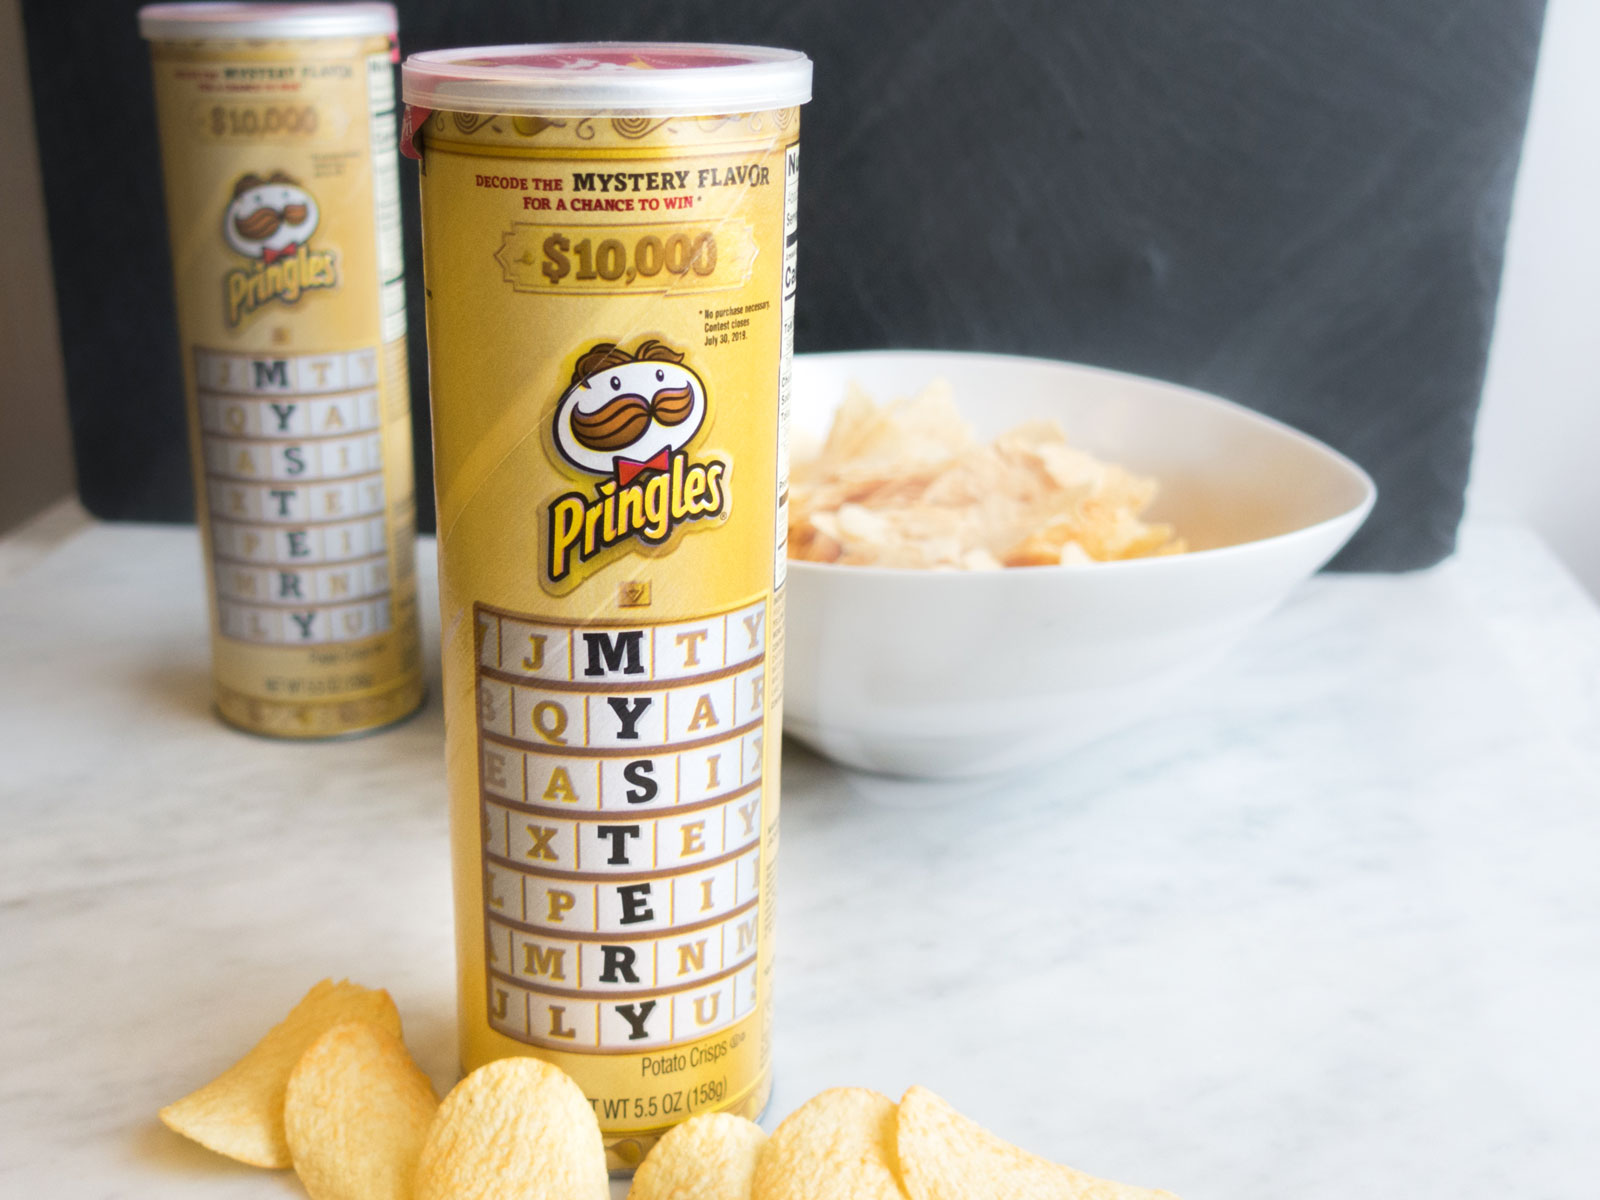 Pringles Created a Mystery Flavor — Here Are Our Best Guesses